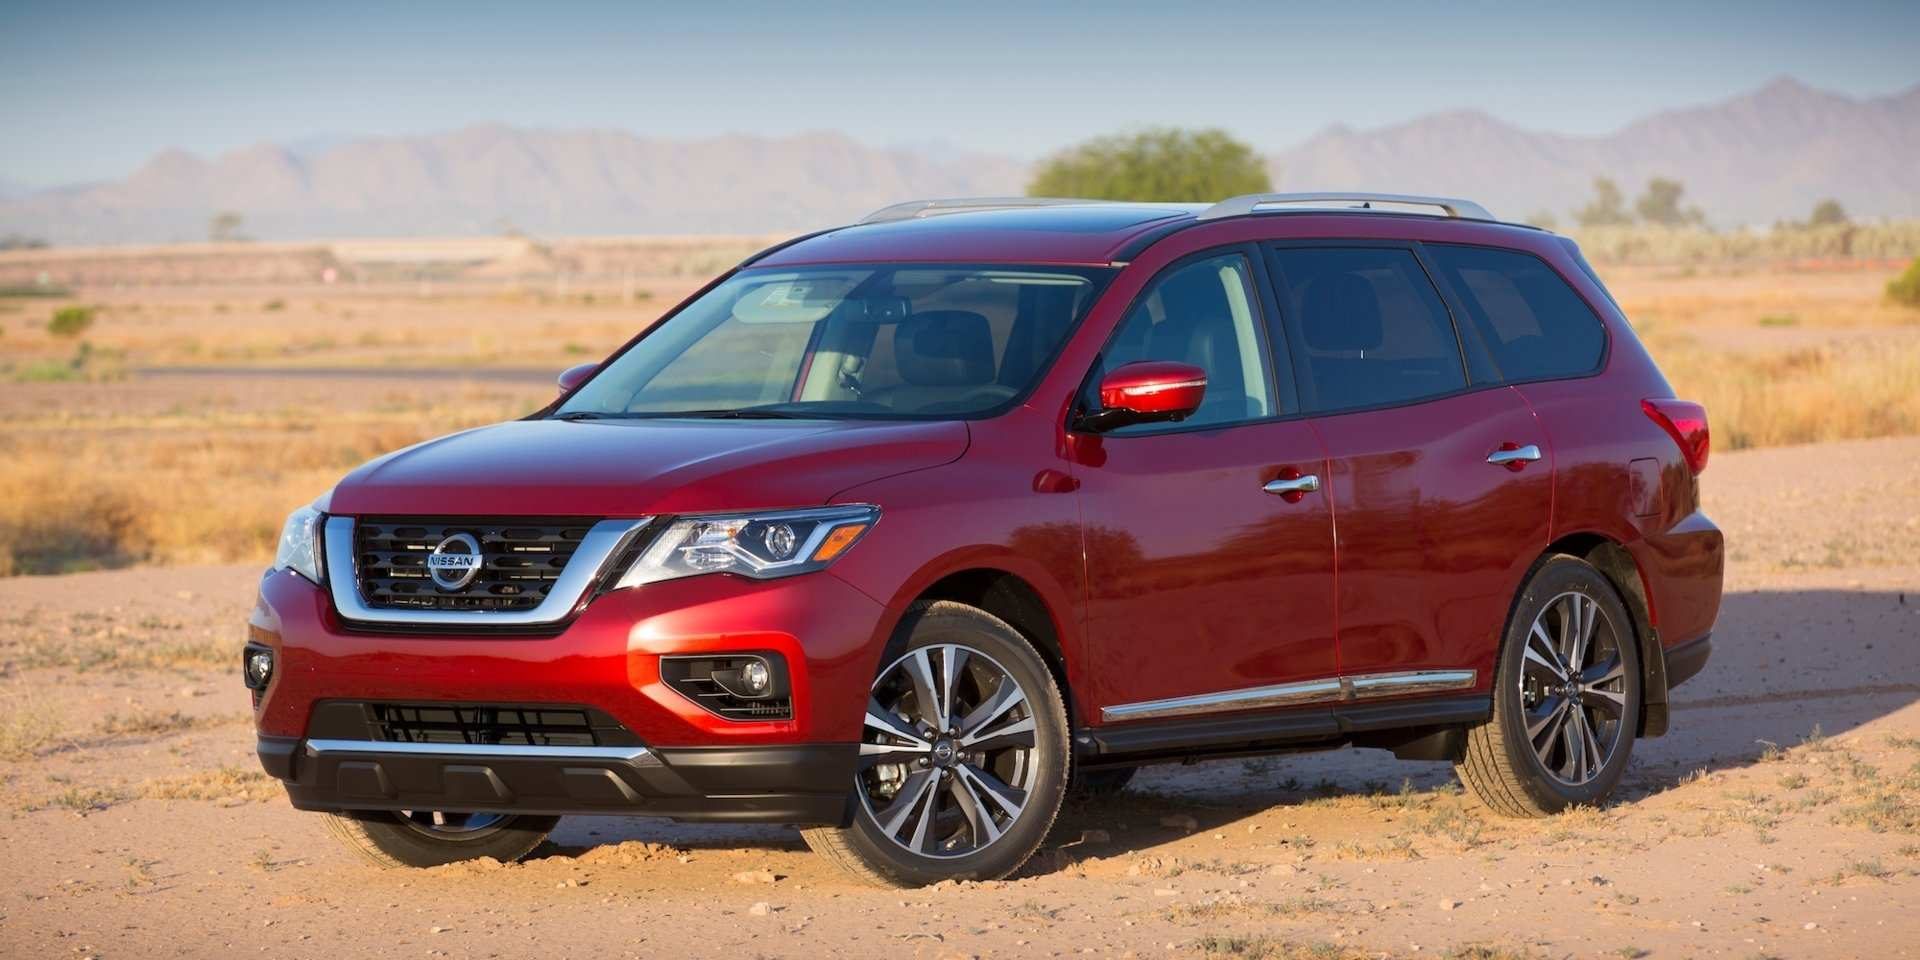 51 The 2020 Nissan Pathfinder Hybrid Redesign And Concept